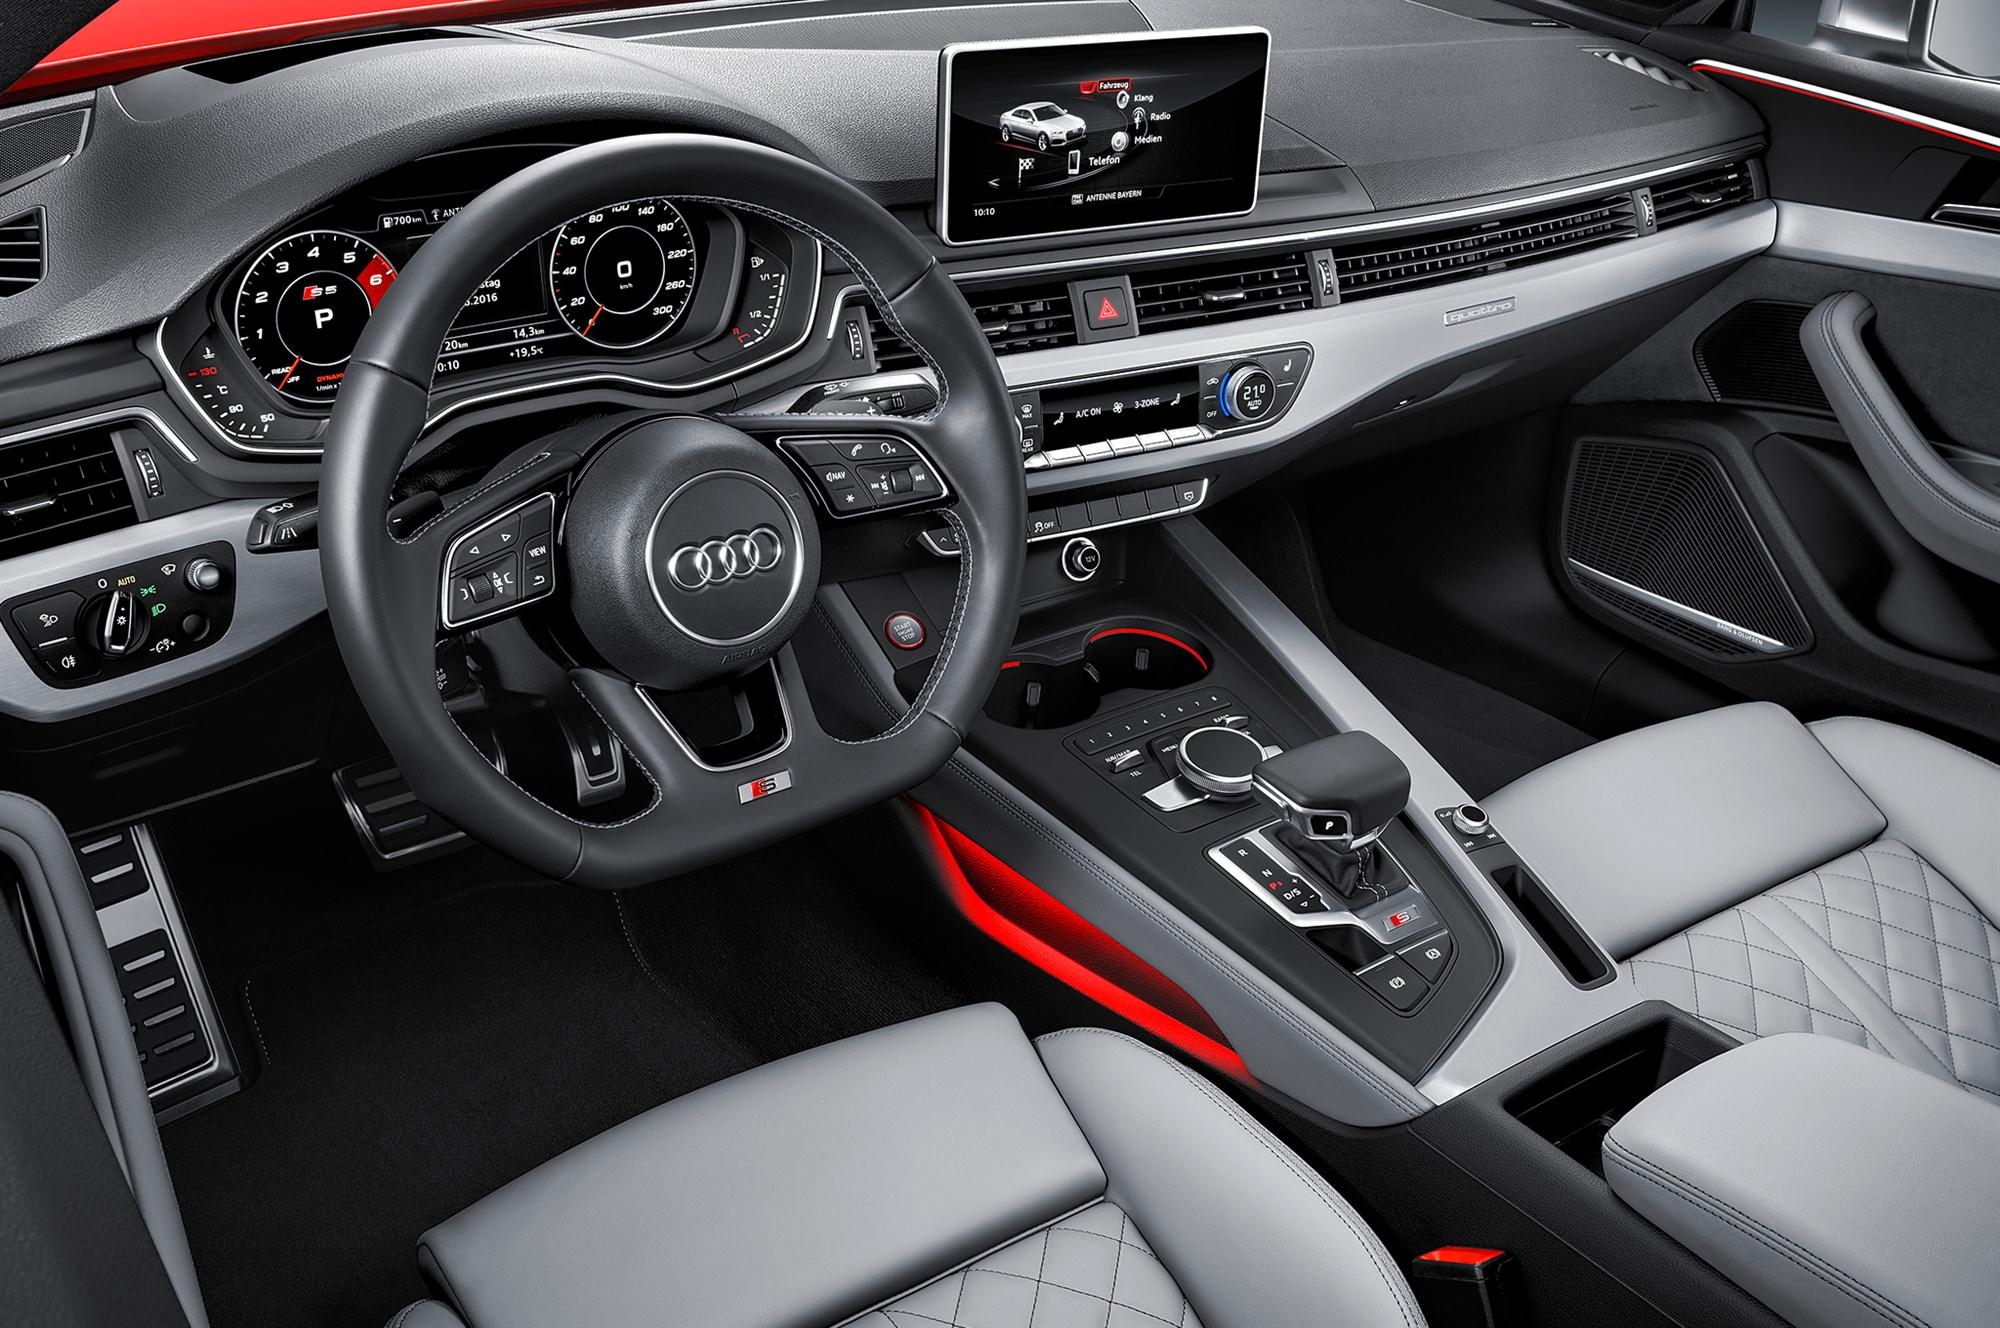 2018 Audi RS5 interior look